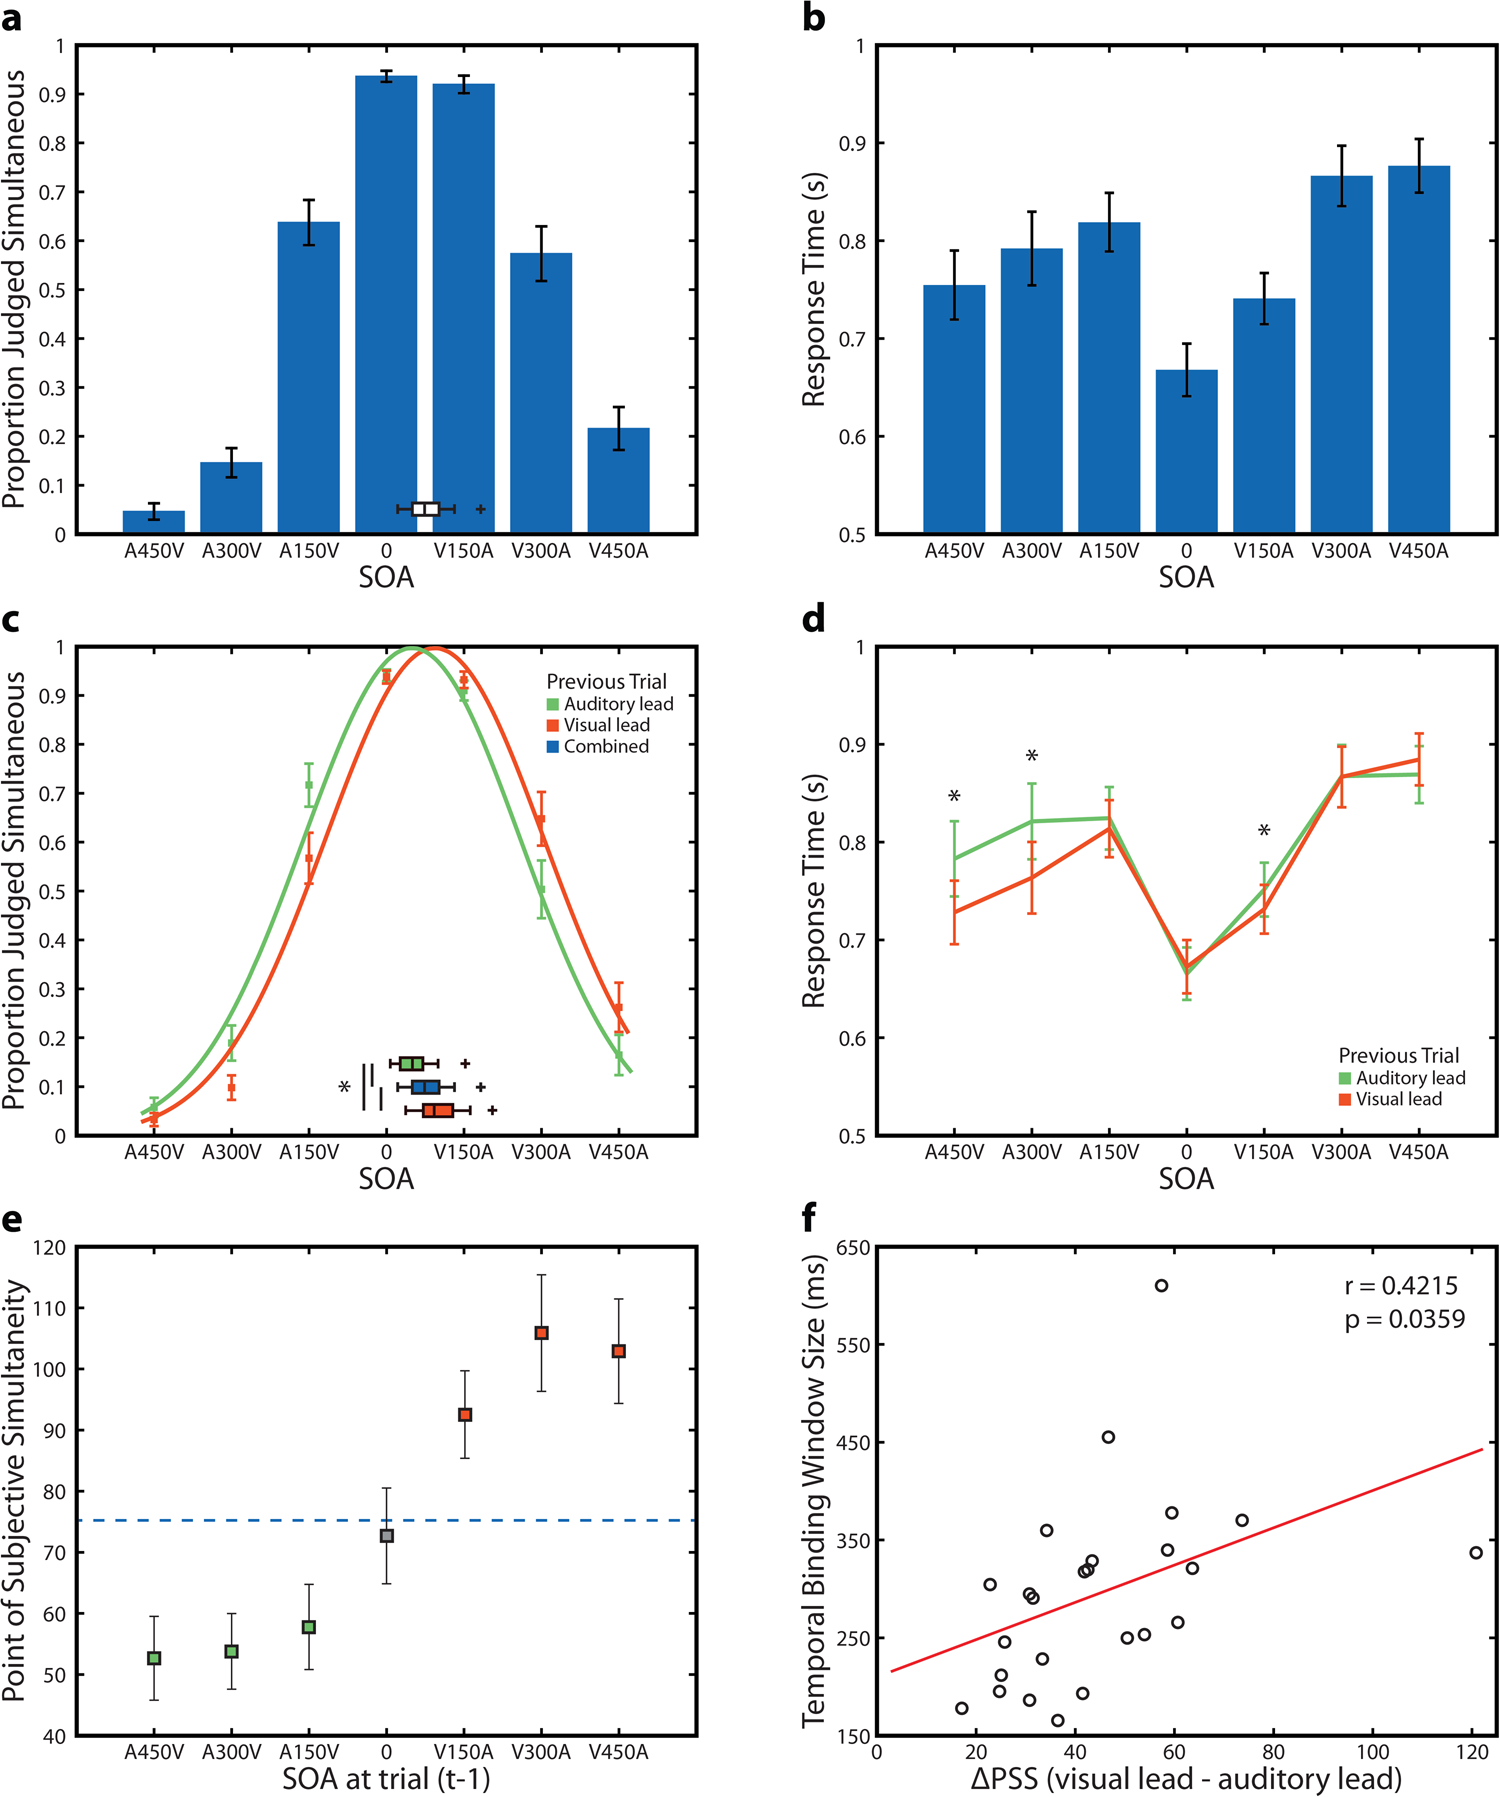 Single Trial Plasticity In Evidence Accumulation Underlies Rapid 30 Ddm To Audio Level Meter Recalibration Asynchronous Audiovisual Speech Scientific Reports